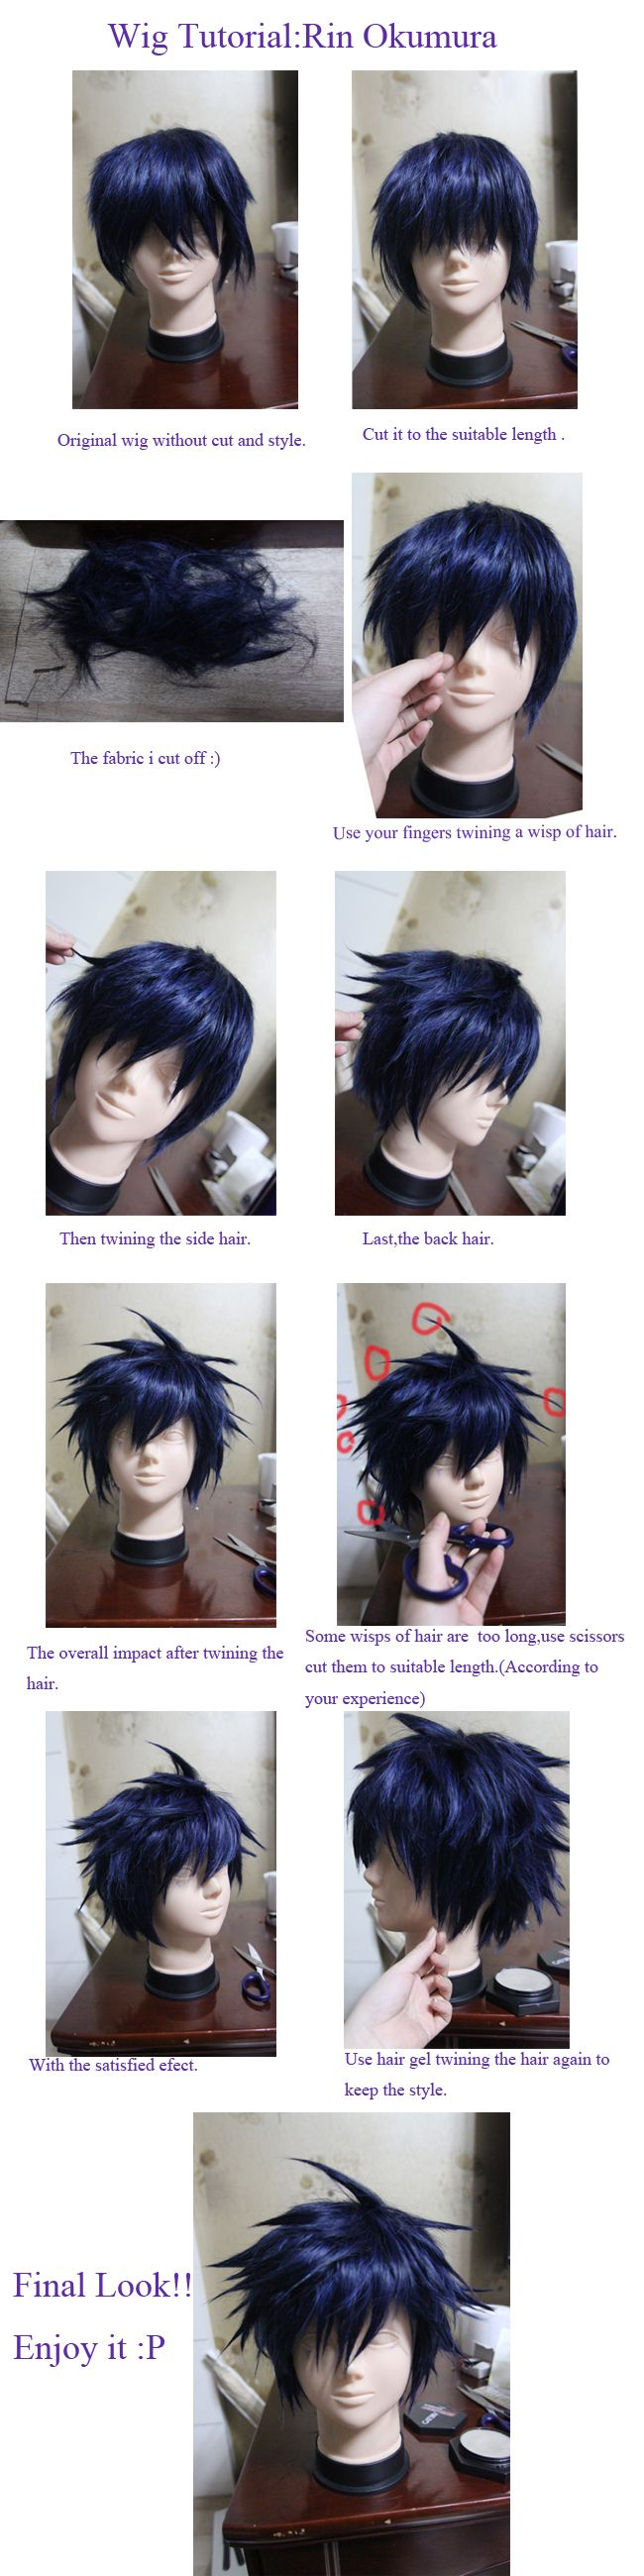 Wig Tutorial Ao No Blue Exorcist Rin Okumura by kasou0630.deviantart.com on @deviantART